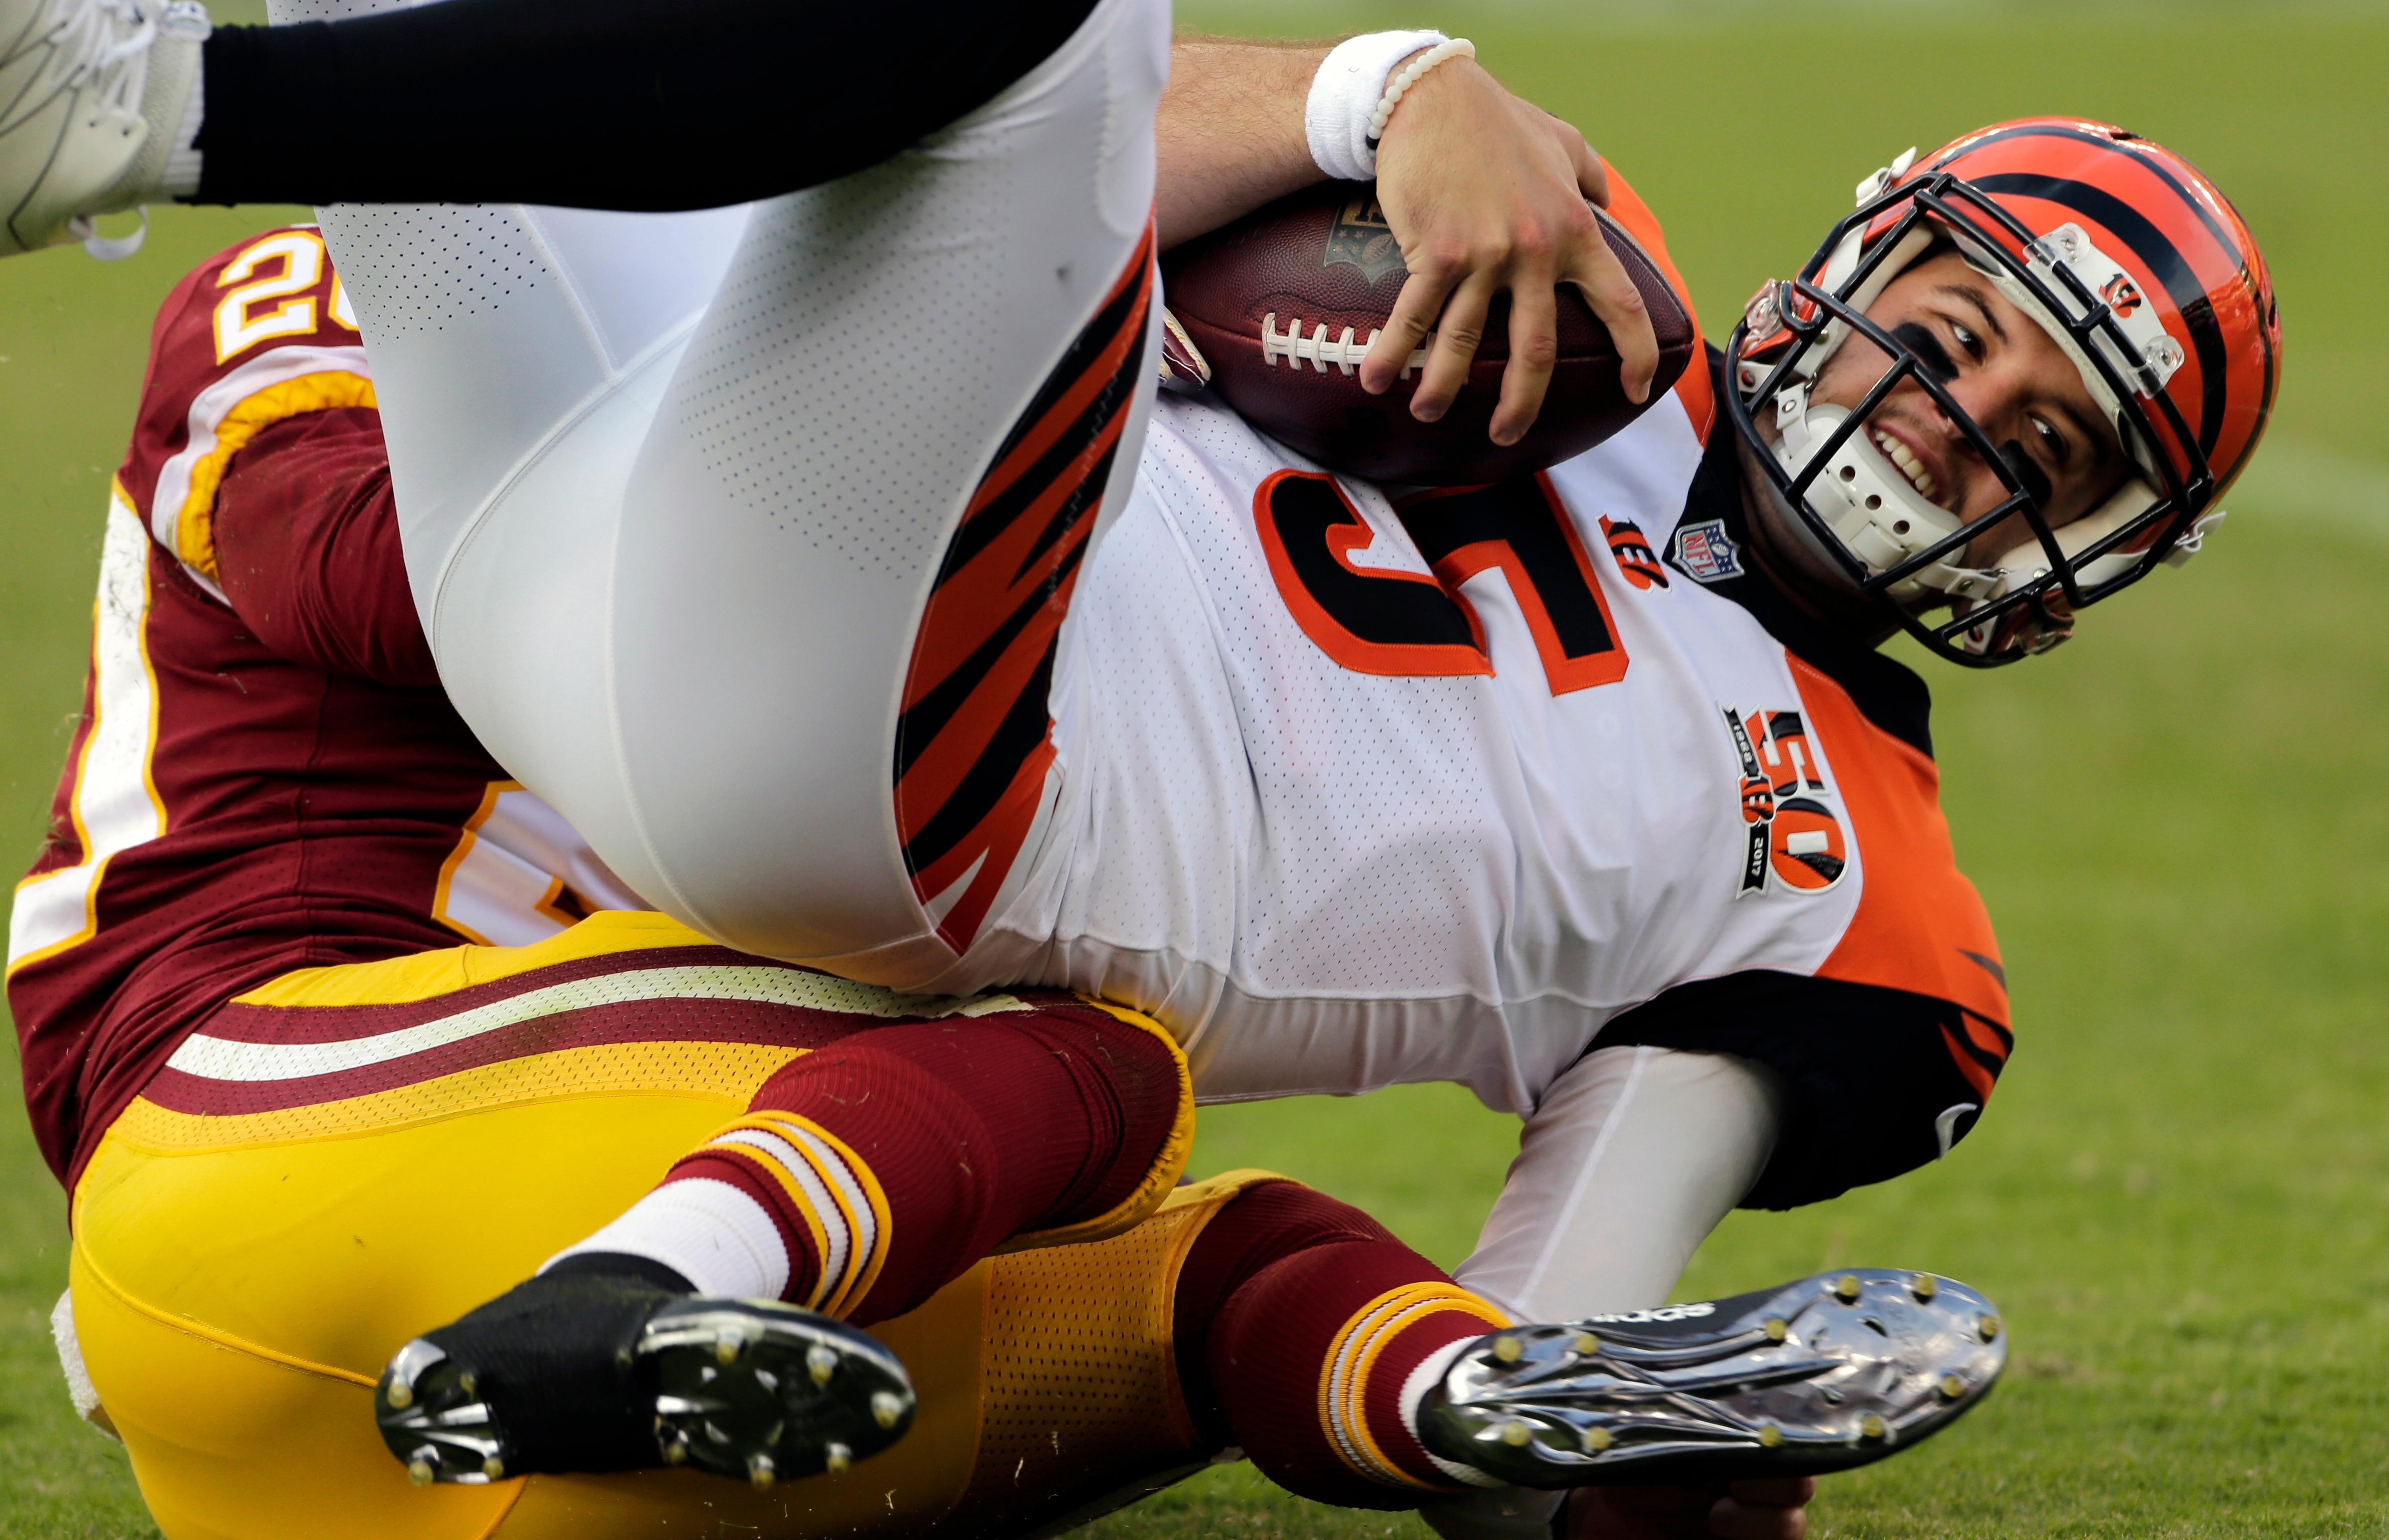 Cincinnati Bengals quarterback AJ McCarron, top, is sacked by Washington Redskins defensive back Joshua Holsey in the second half of a preseason NFL football game, Sunday, Aug. 27, 2017, in Landover, Md. (AP Photo/Mark Tenally)